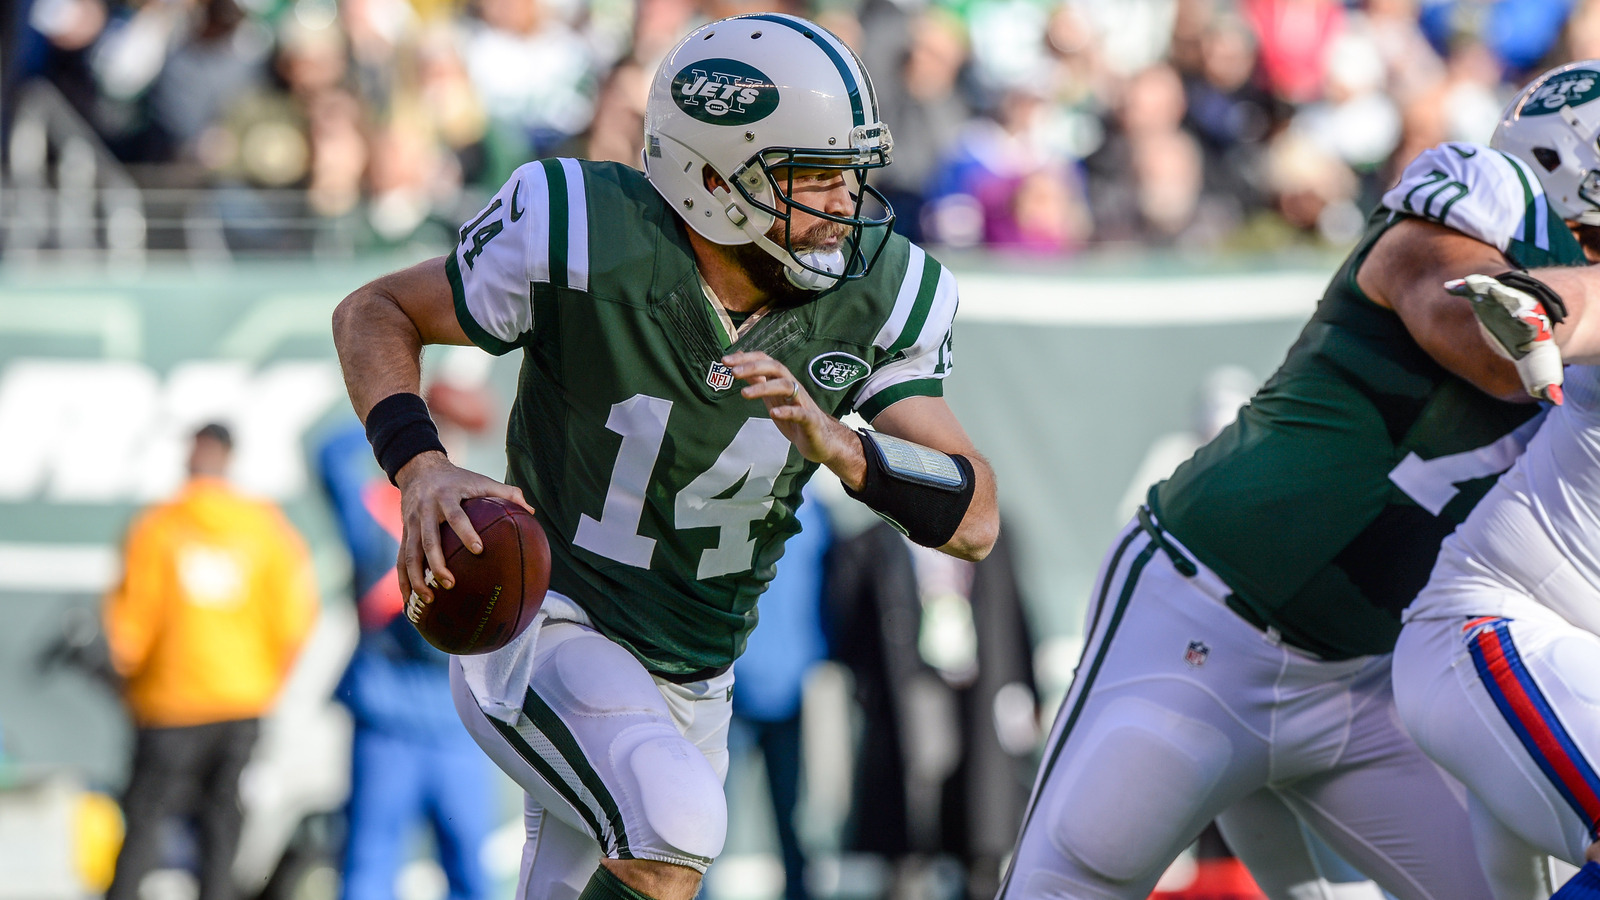 Ryan Fitzpatrick's contract voids, now a free agent